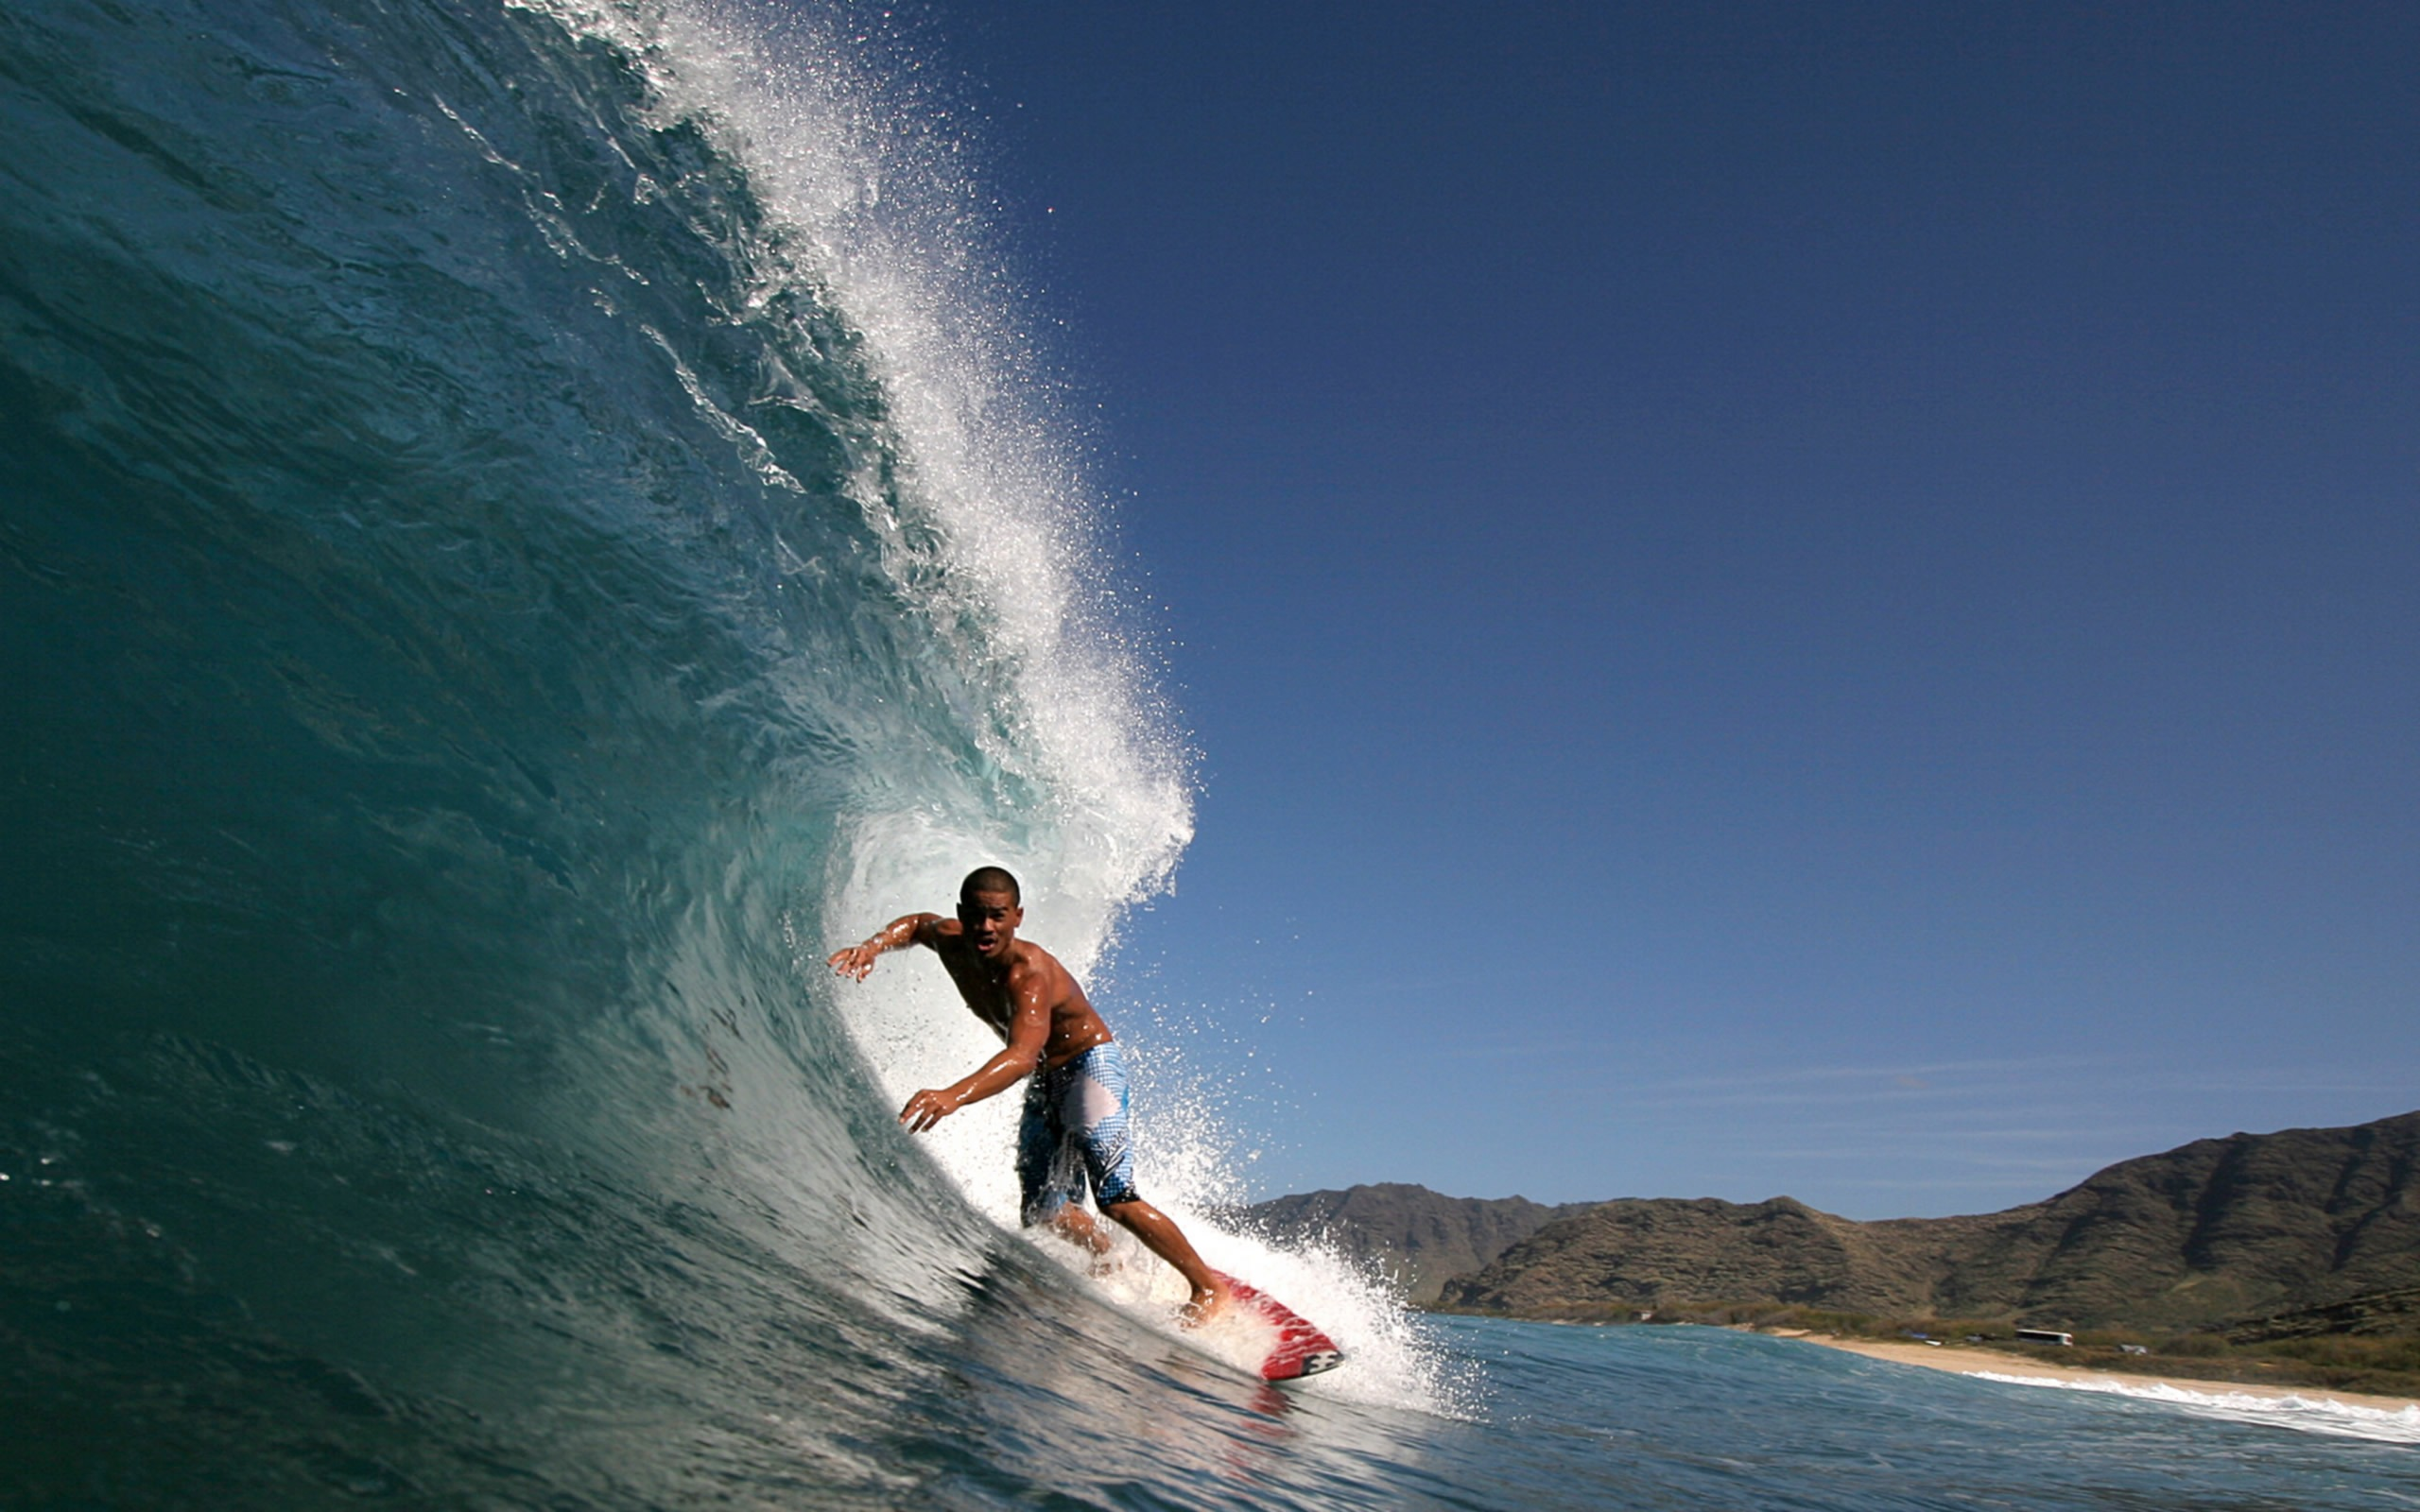 Outdoor Sports Wallpaper 24 Wallpapers: Surfing- Outdoor Sports Select-2560x1600 Download